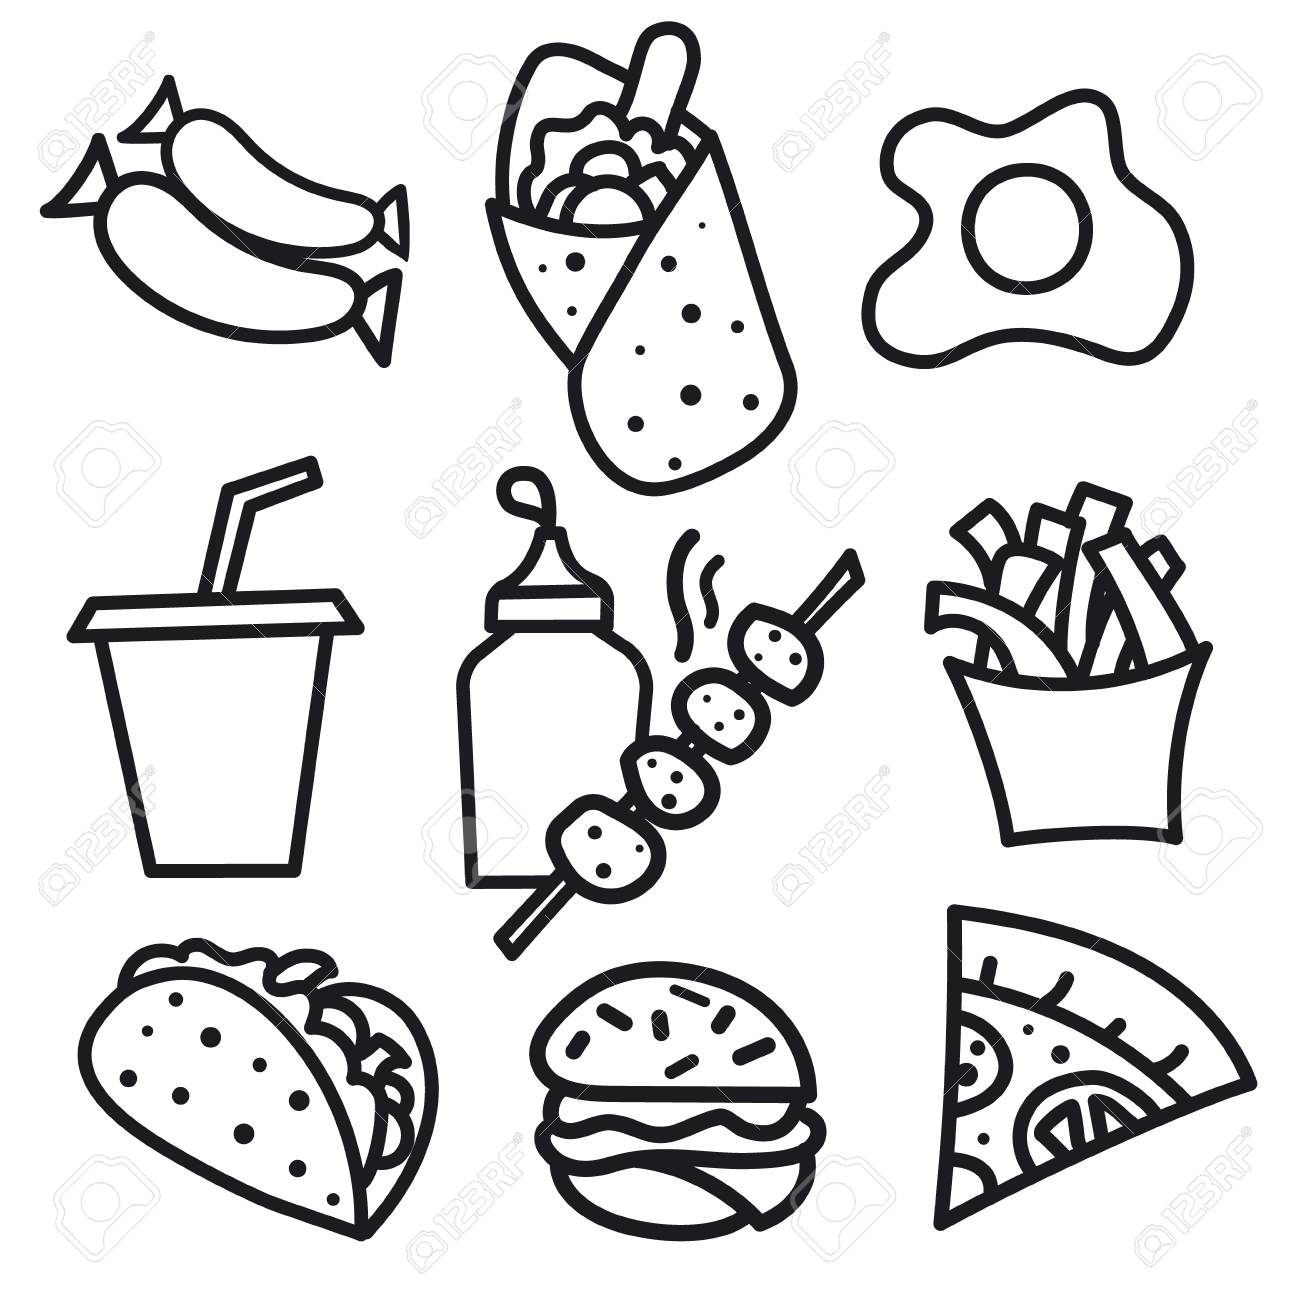 Illustration of set street food icons and signs black and white